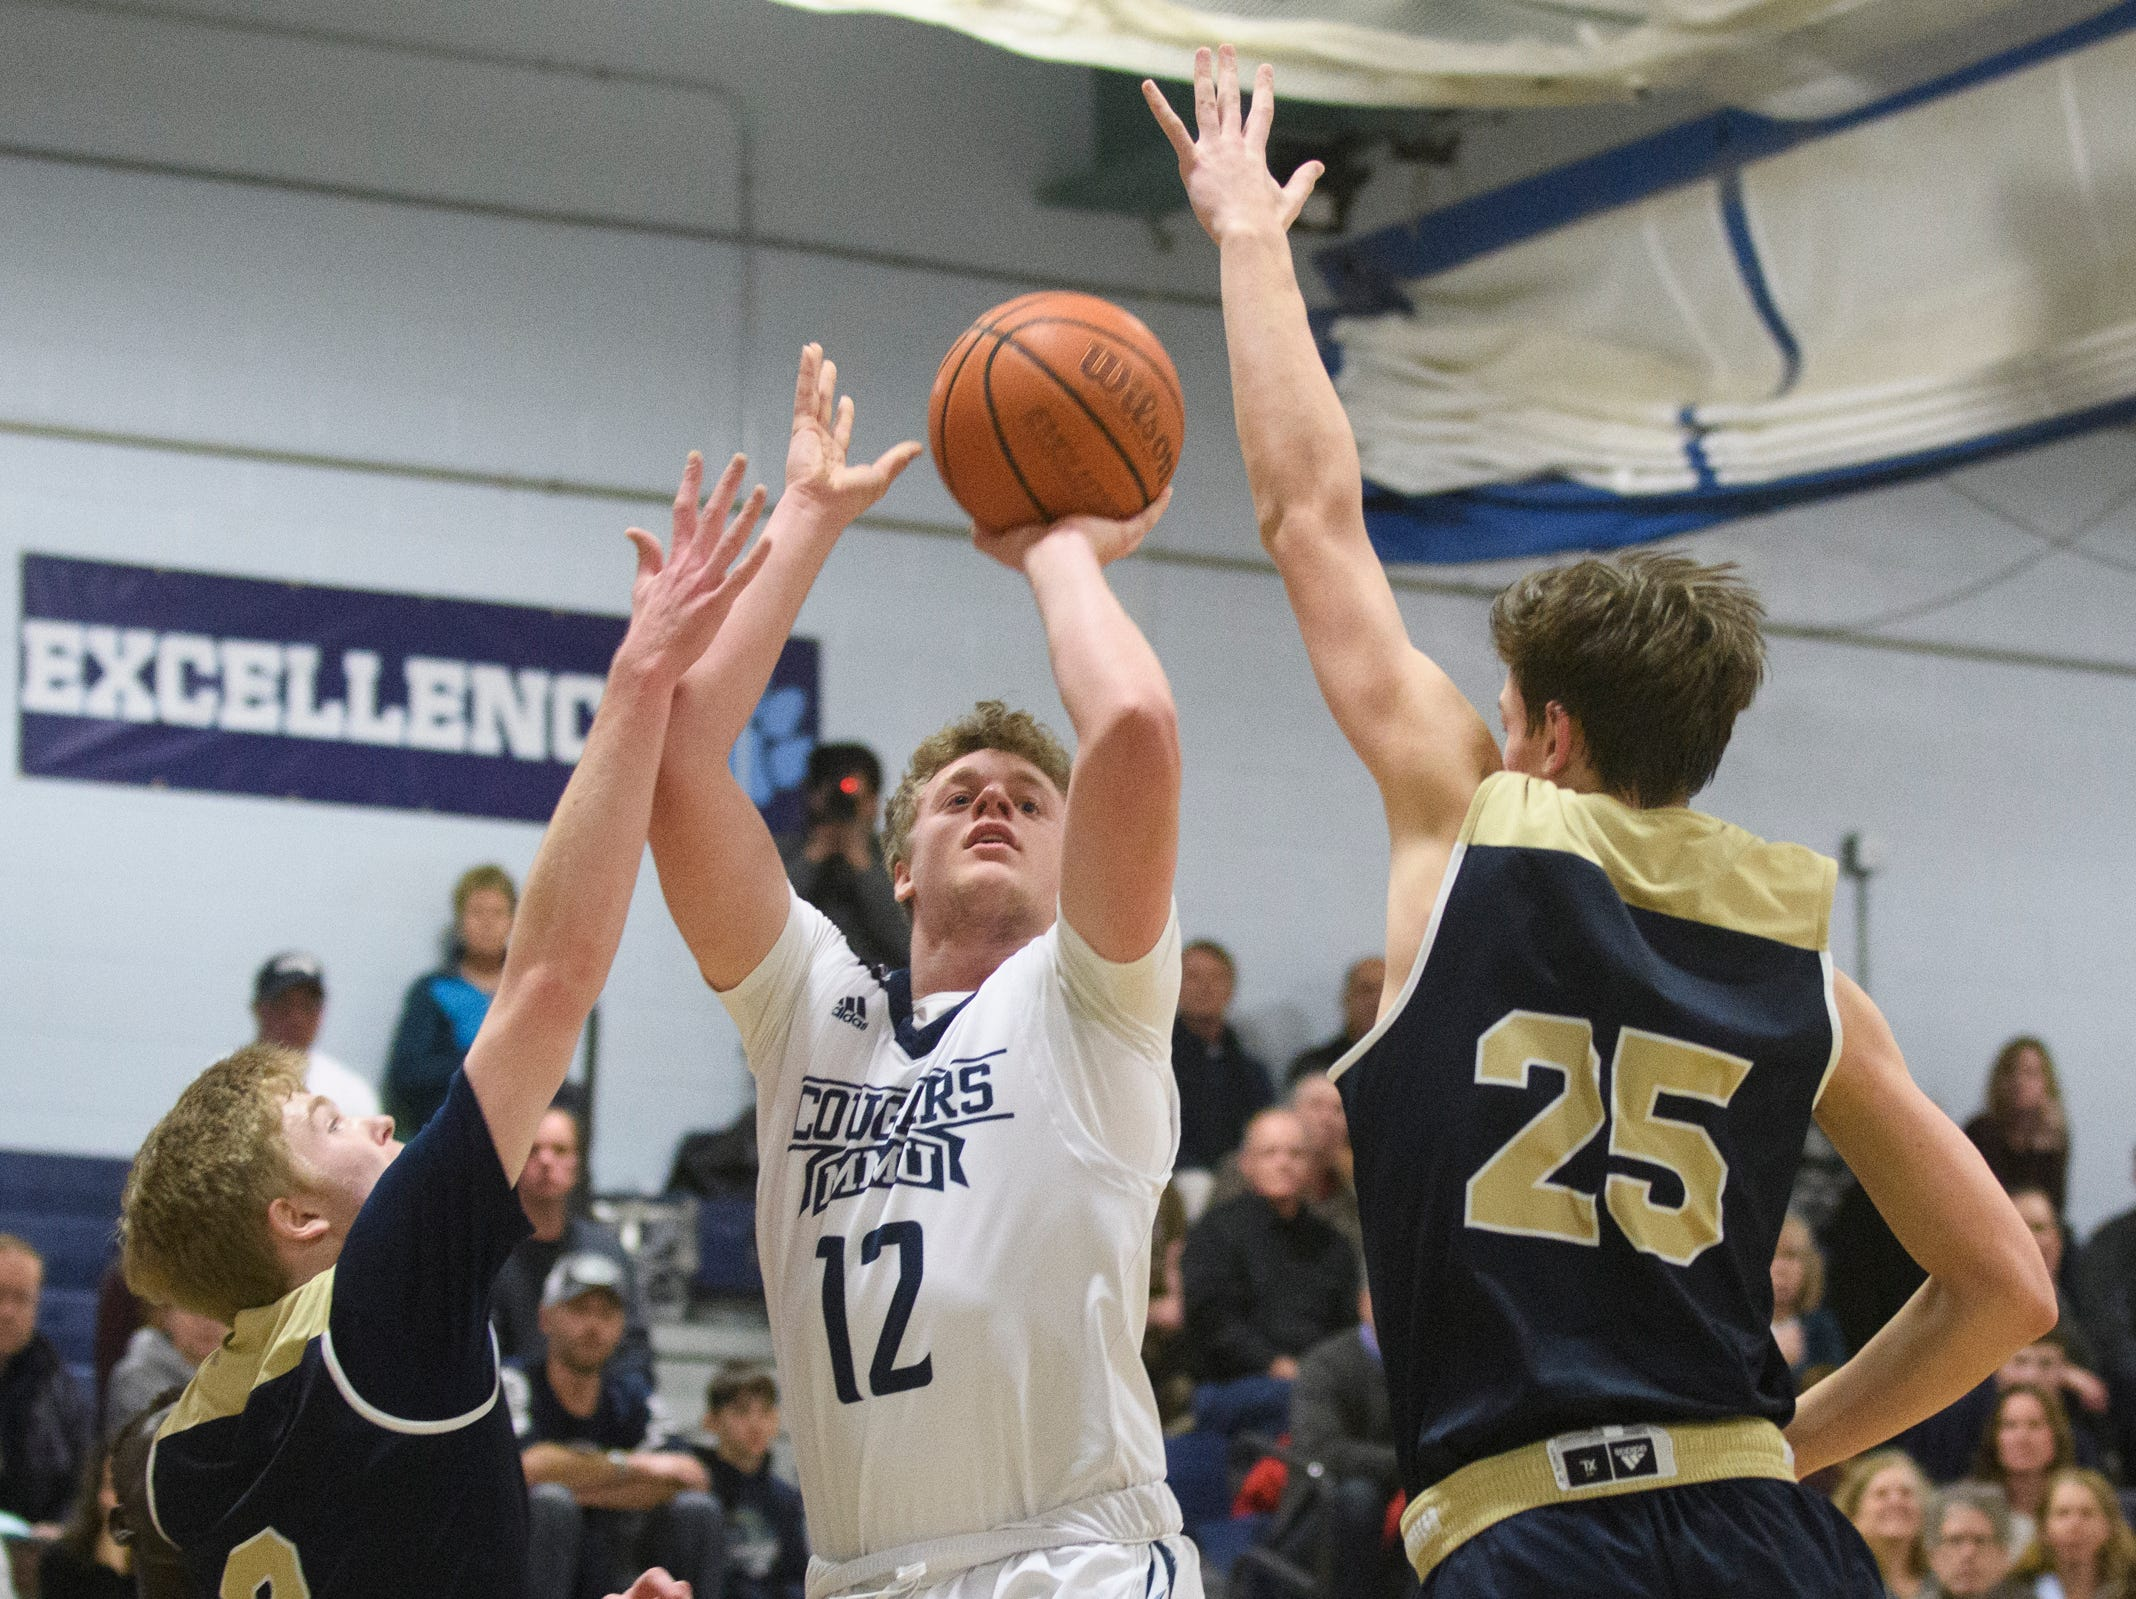 MMU's Asa Carlson (12) takes a shot over Essex's Mitchell Moffatt (25) during the boys basketball game between the Essex Hornets and the Mount Mansfield Cougars at MMU High School on Wednesday night February 13, 2019 in Jericho, Vermont.